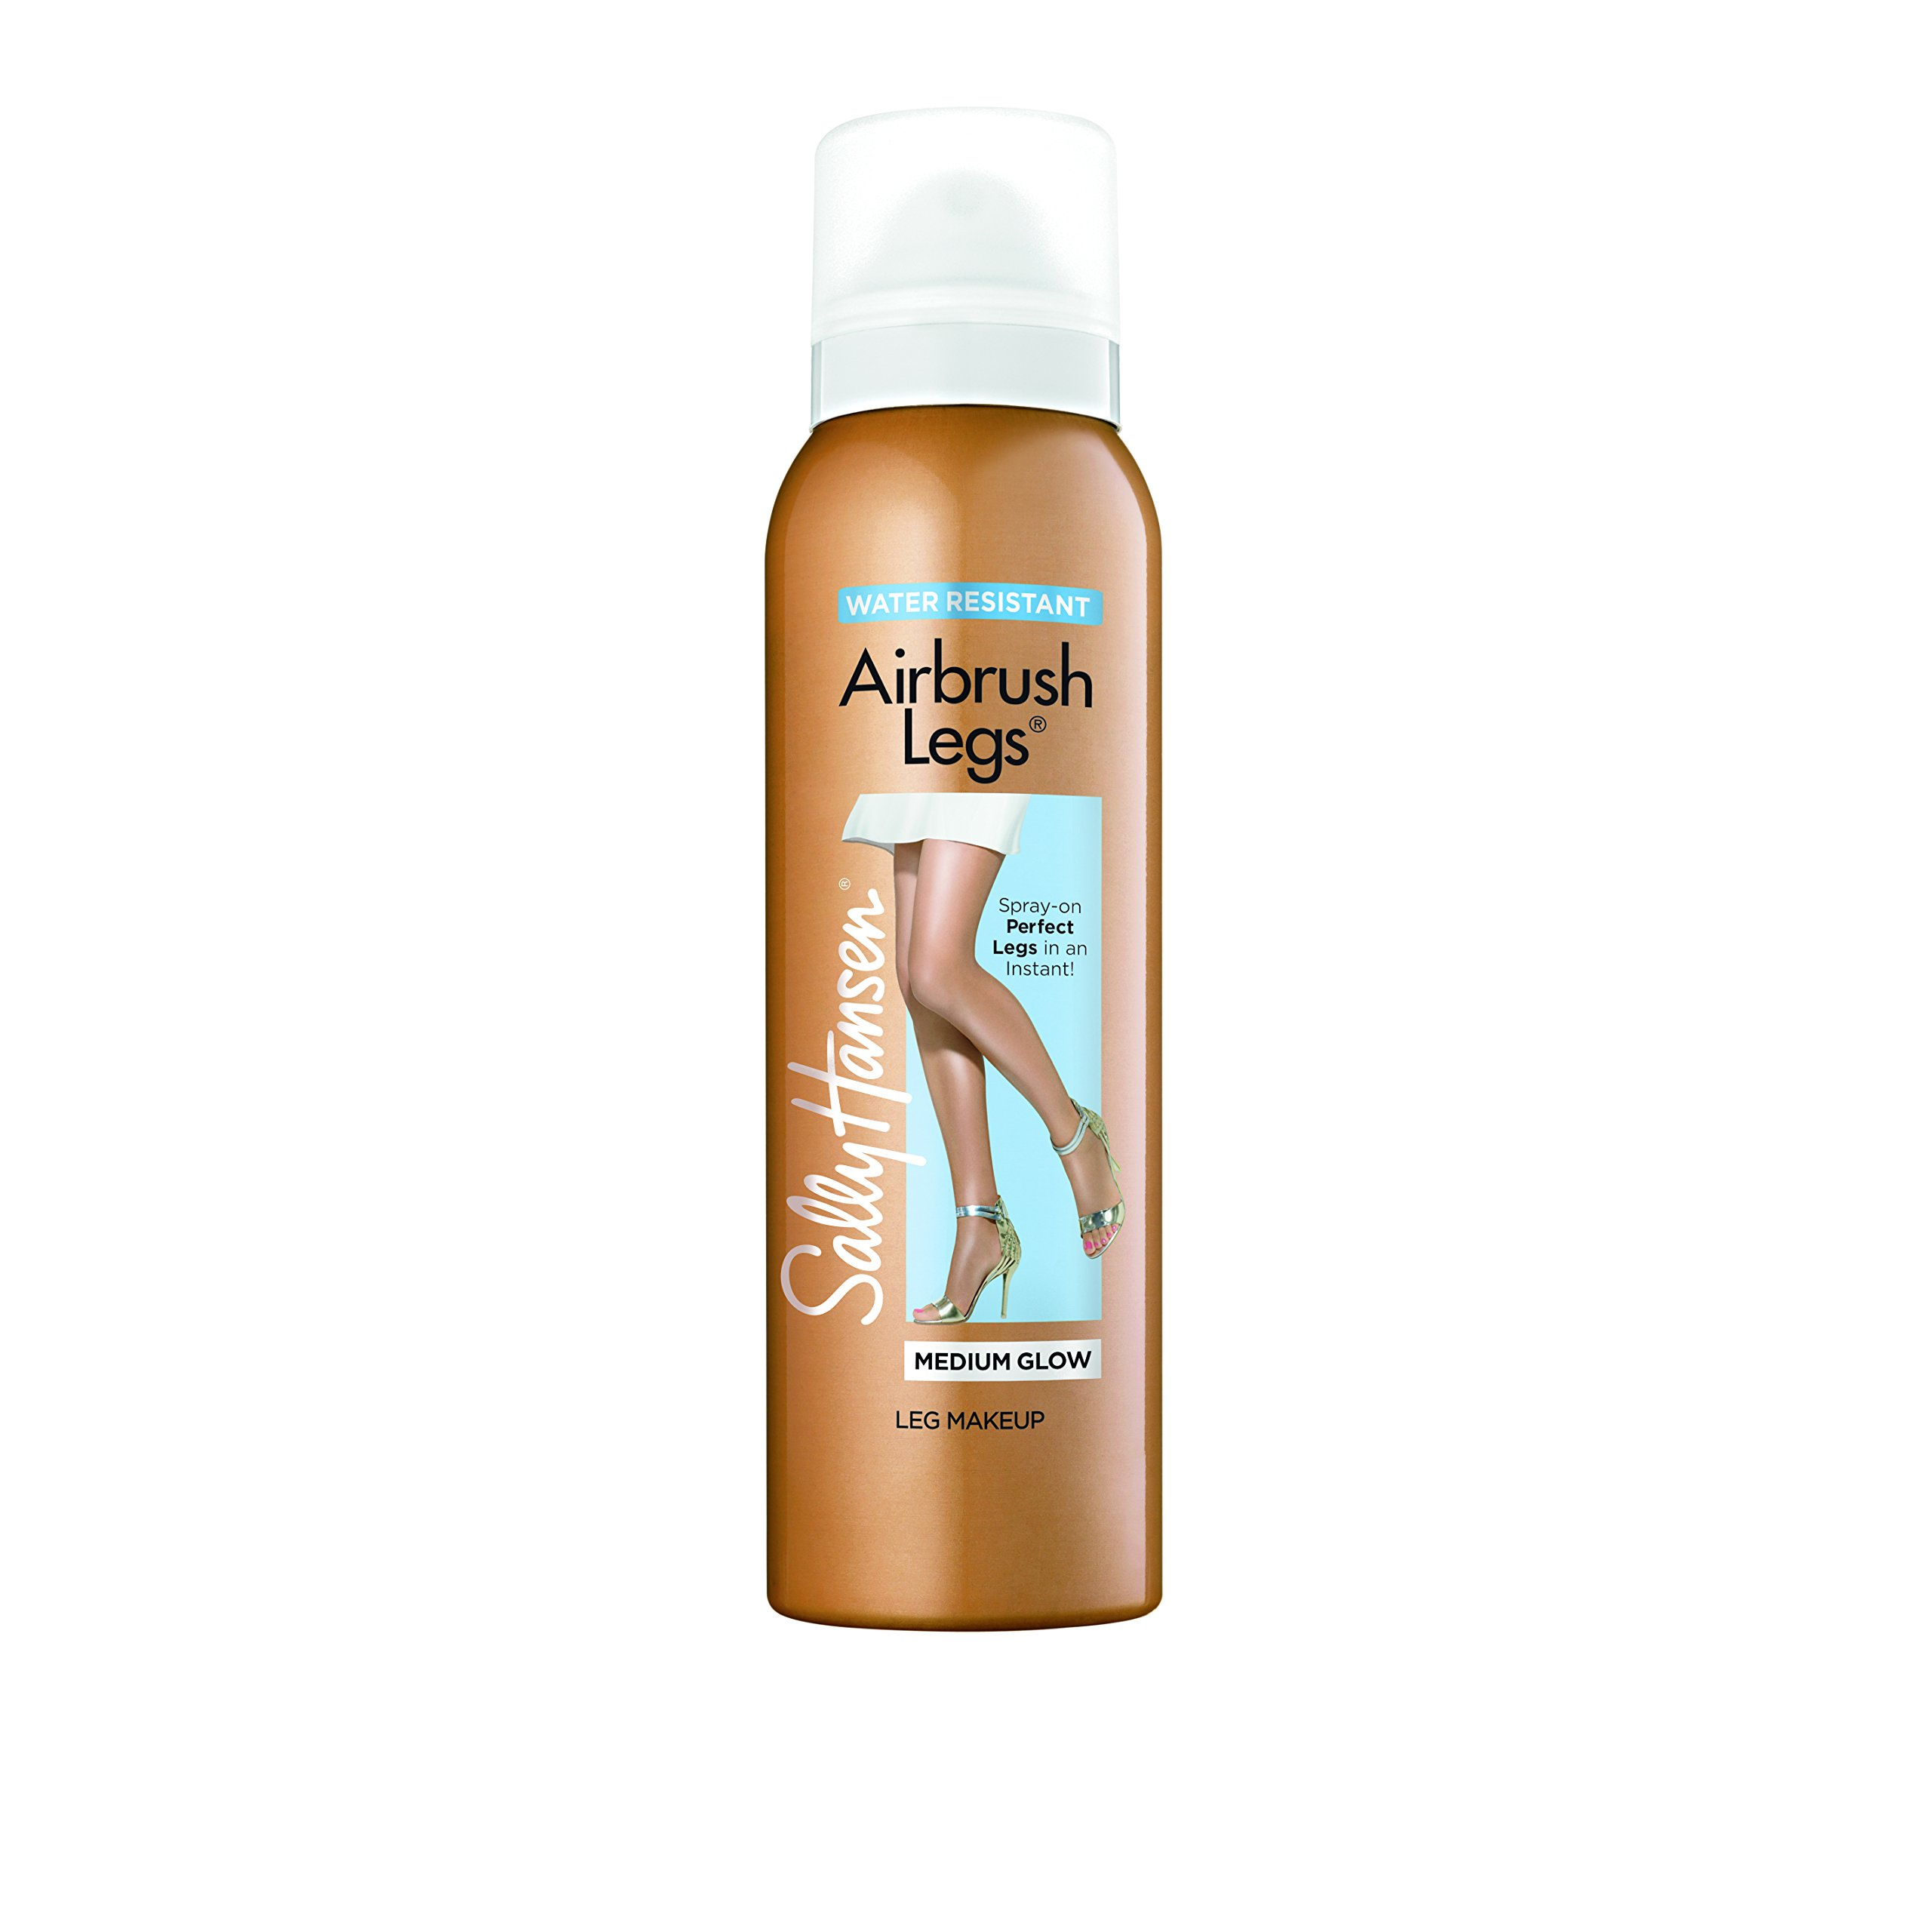 Sally Hansen Airbrush Legs, Leg Makeup, Medium Glow, 4.4 Ounce by Sally Hansen